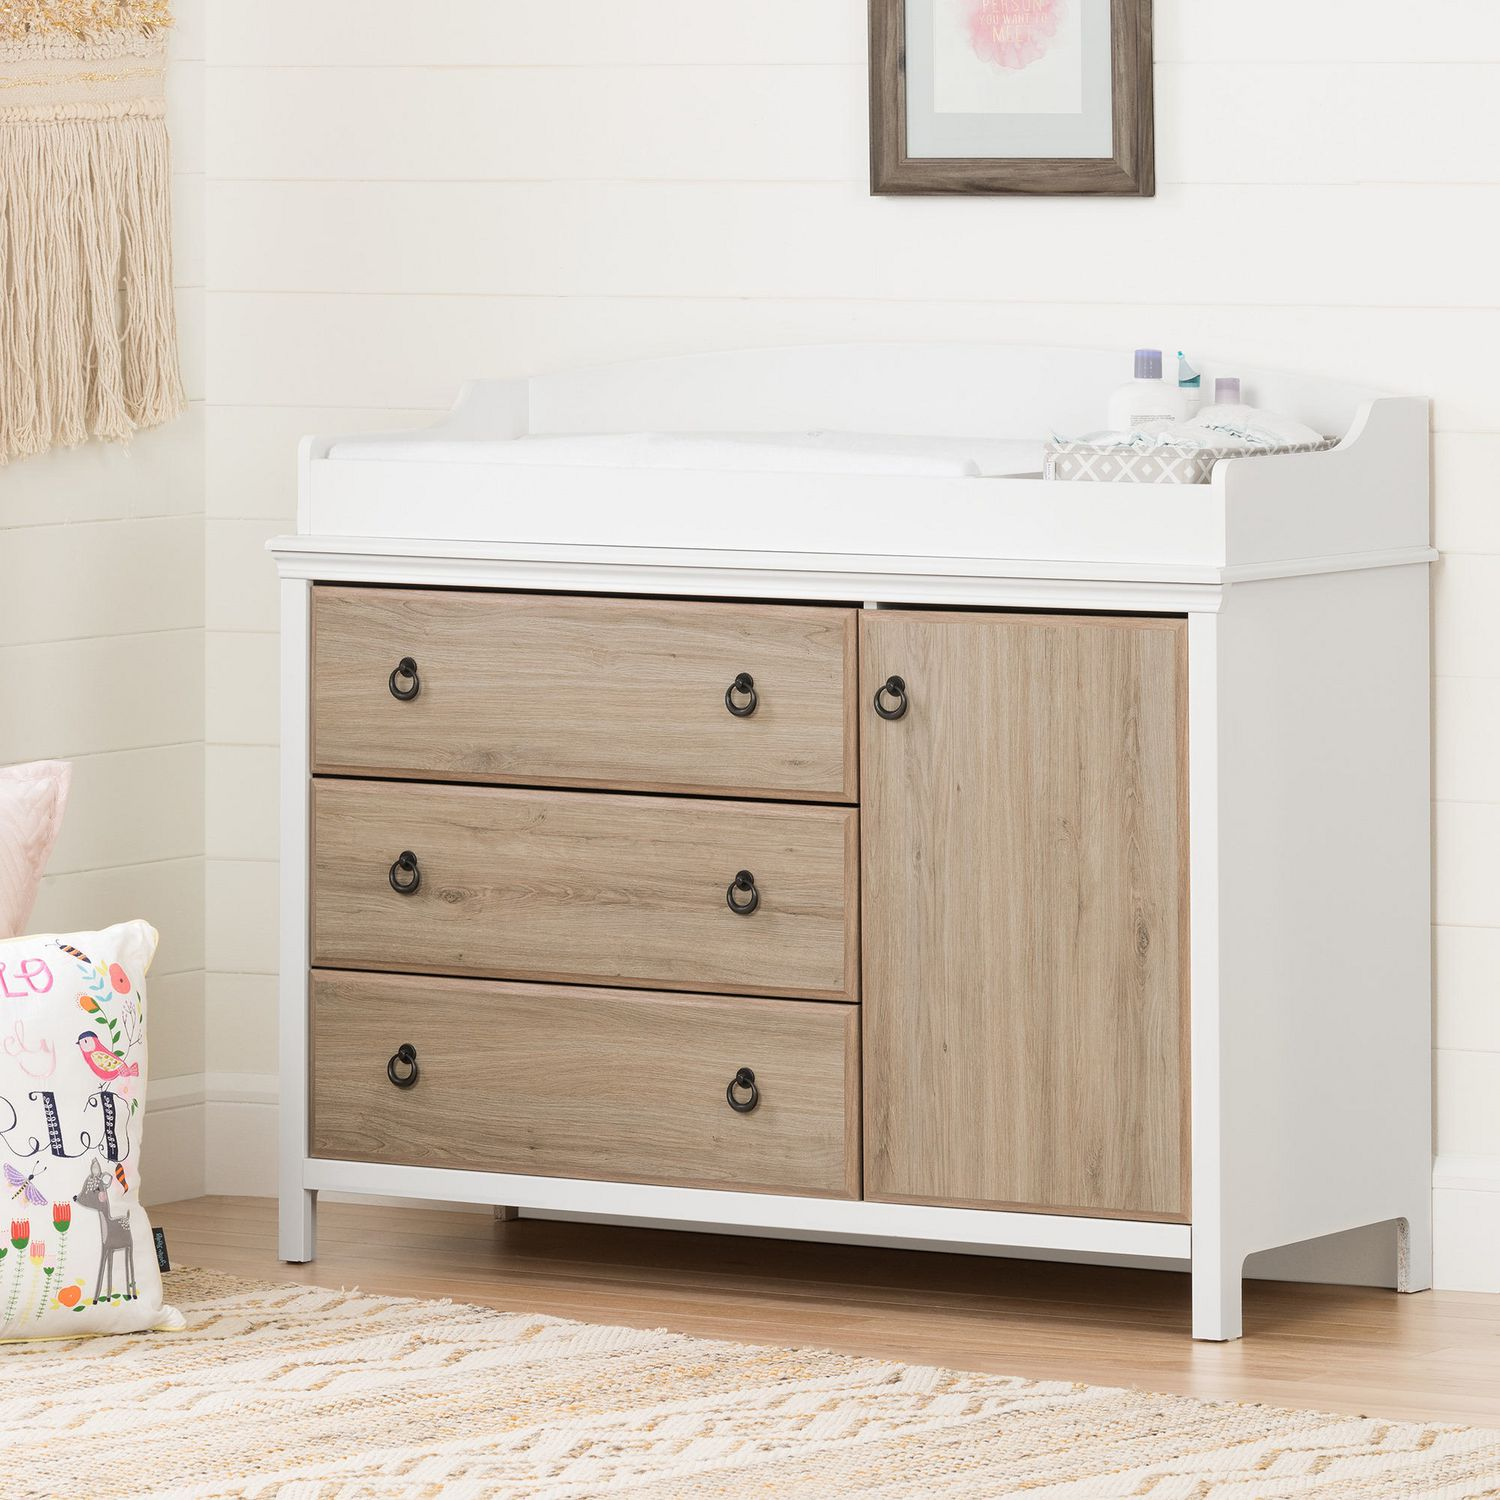 Surprising South Shore Catimini Changing Table With Removable Changing Station Pure White And Rustic Oak Download Free Architecture Designs Intelgarnamadebymaigaardcom